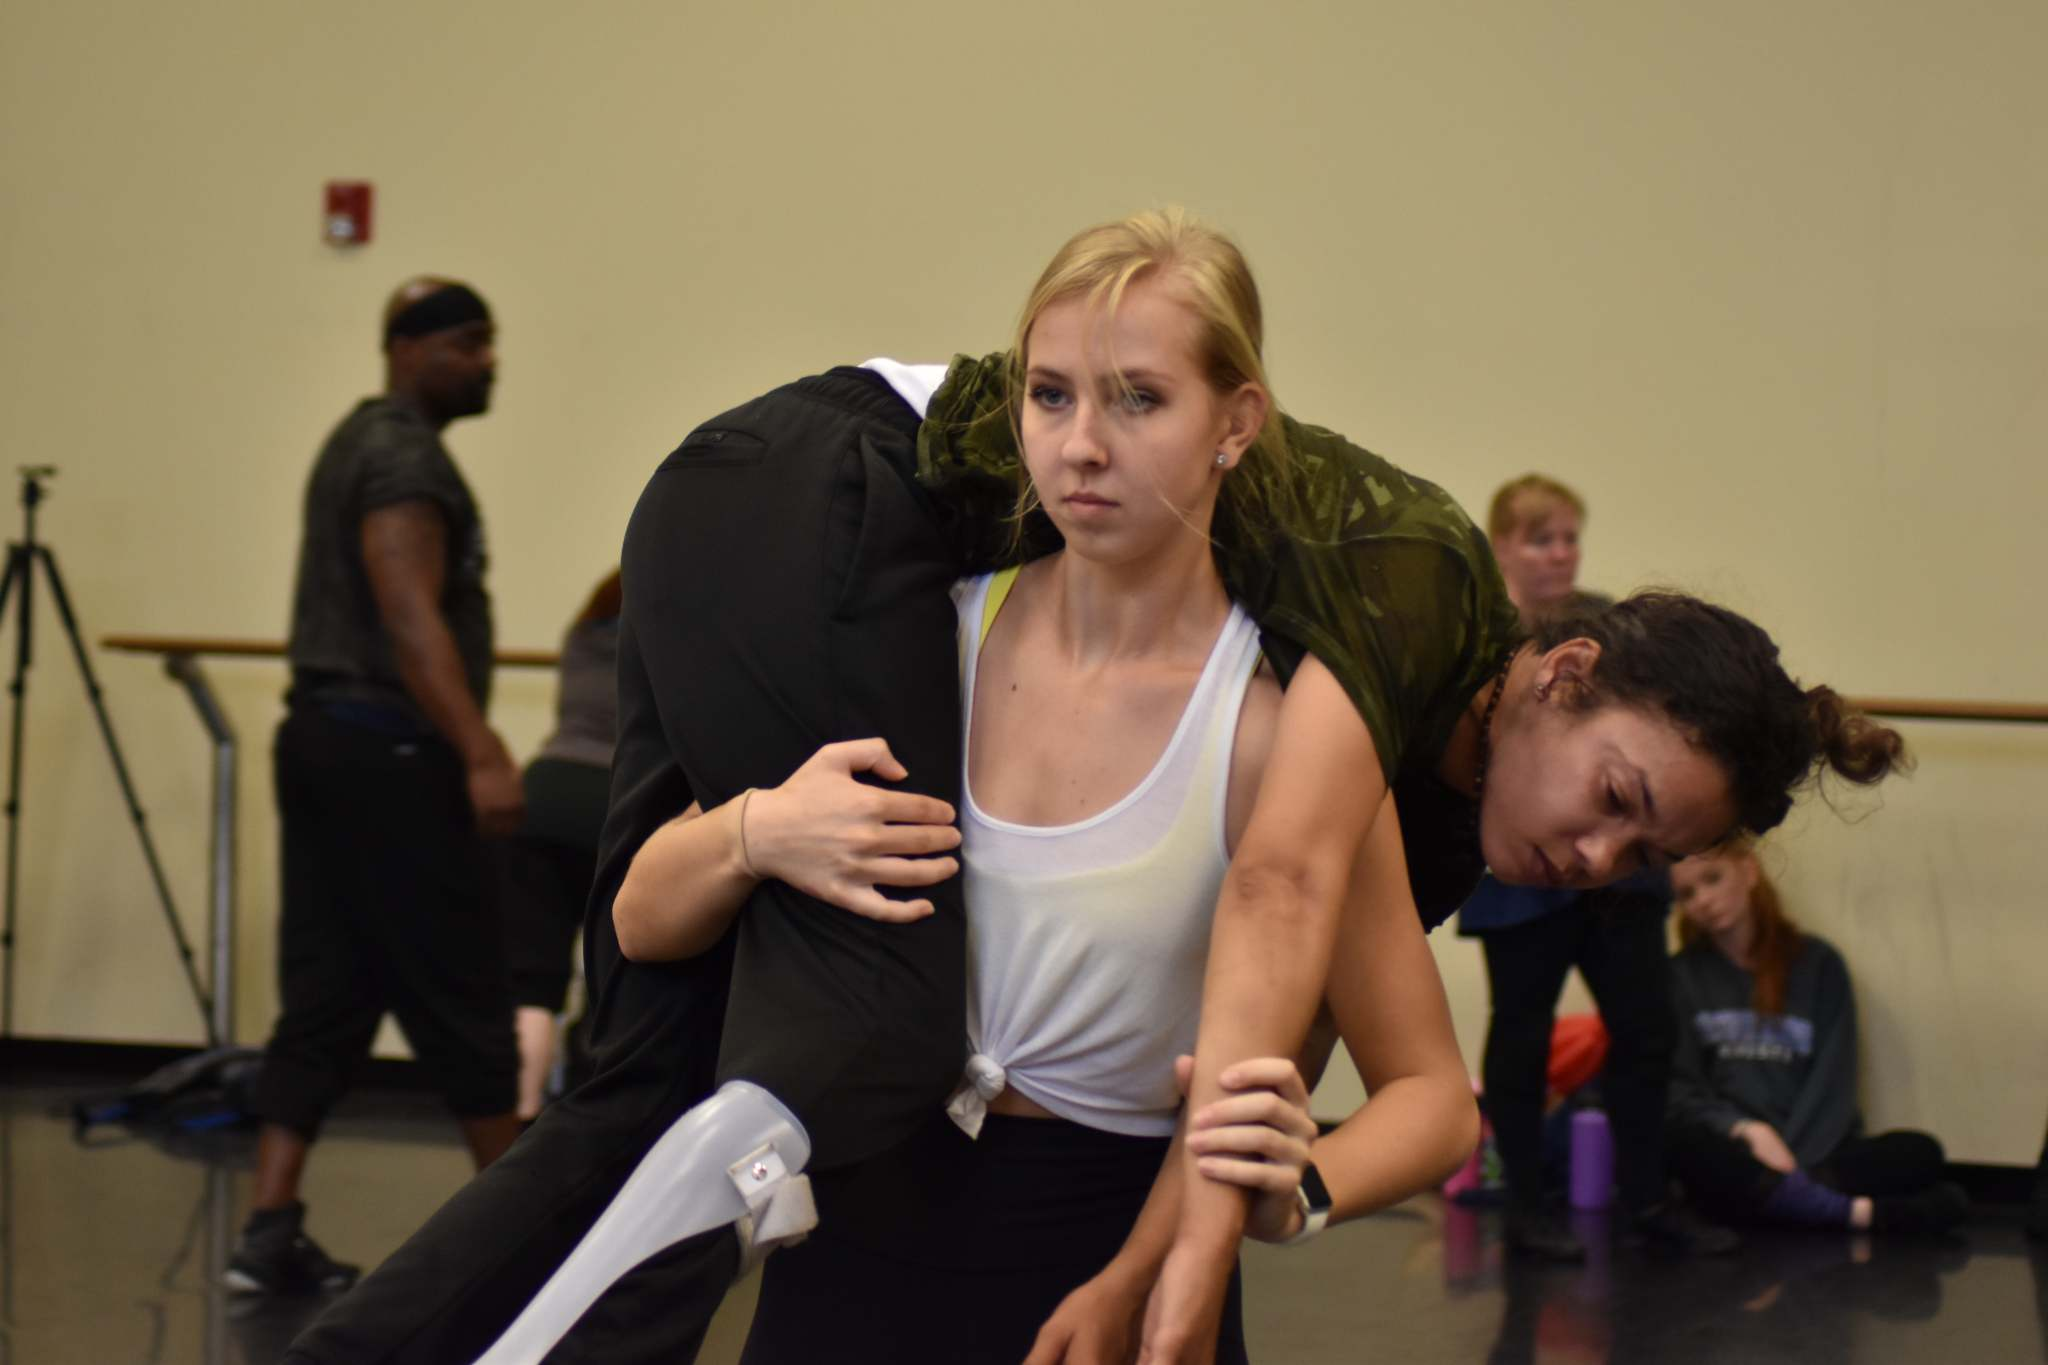 Army Veteran Kay Thornhill and Tampa Civilian dancer Samantha Kedziora during the June DIAVOLO Veterans Project Residency.